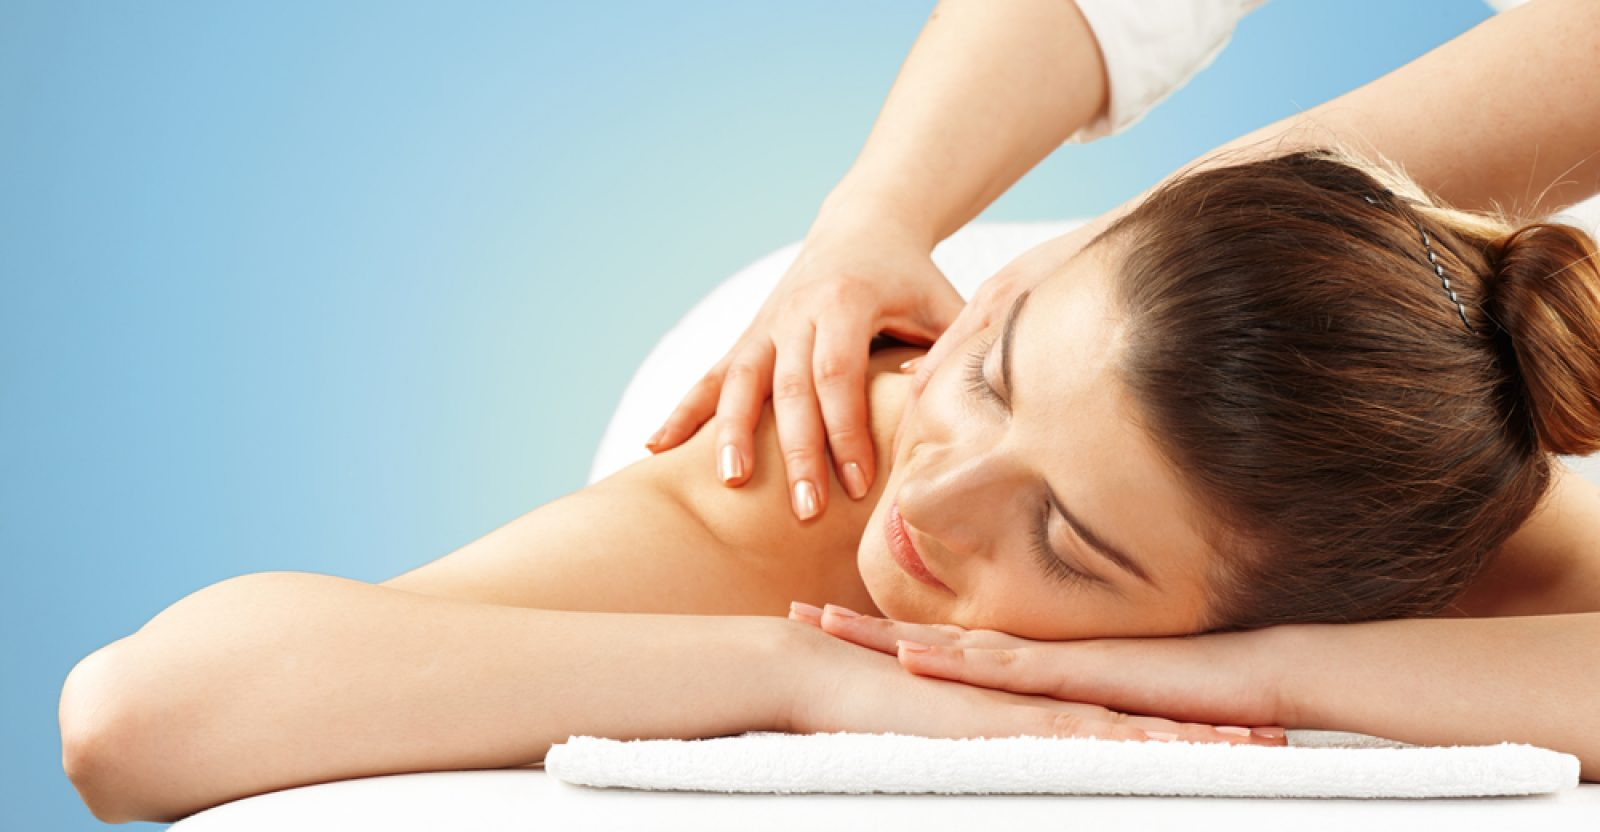 11 Amazing Benefits of Massage